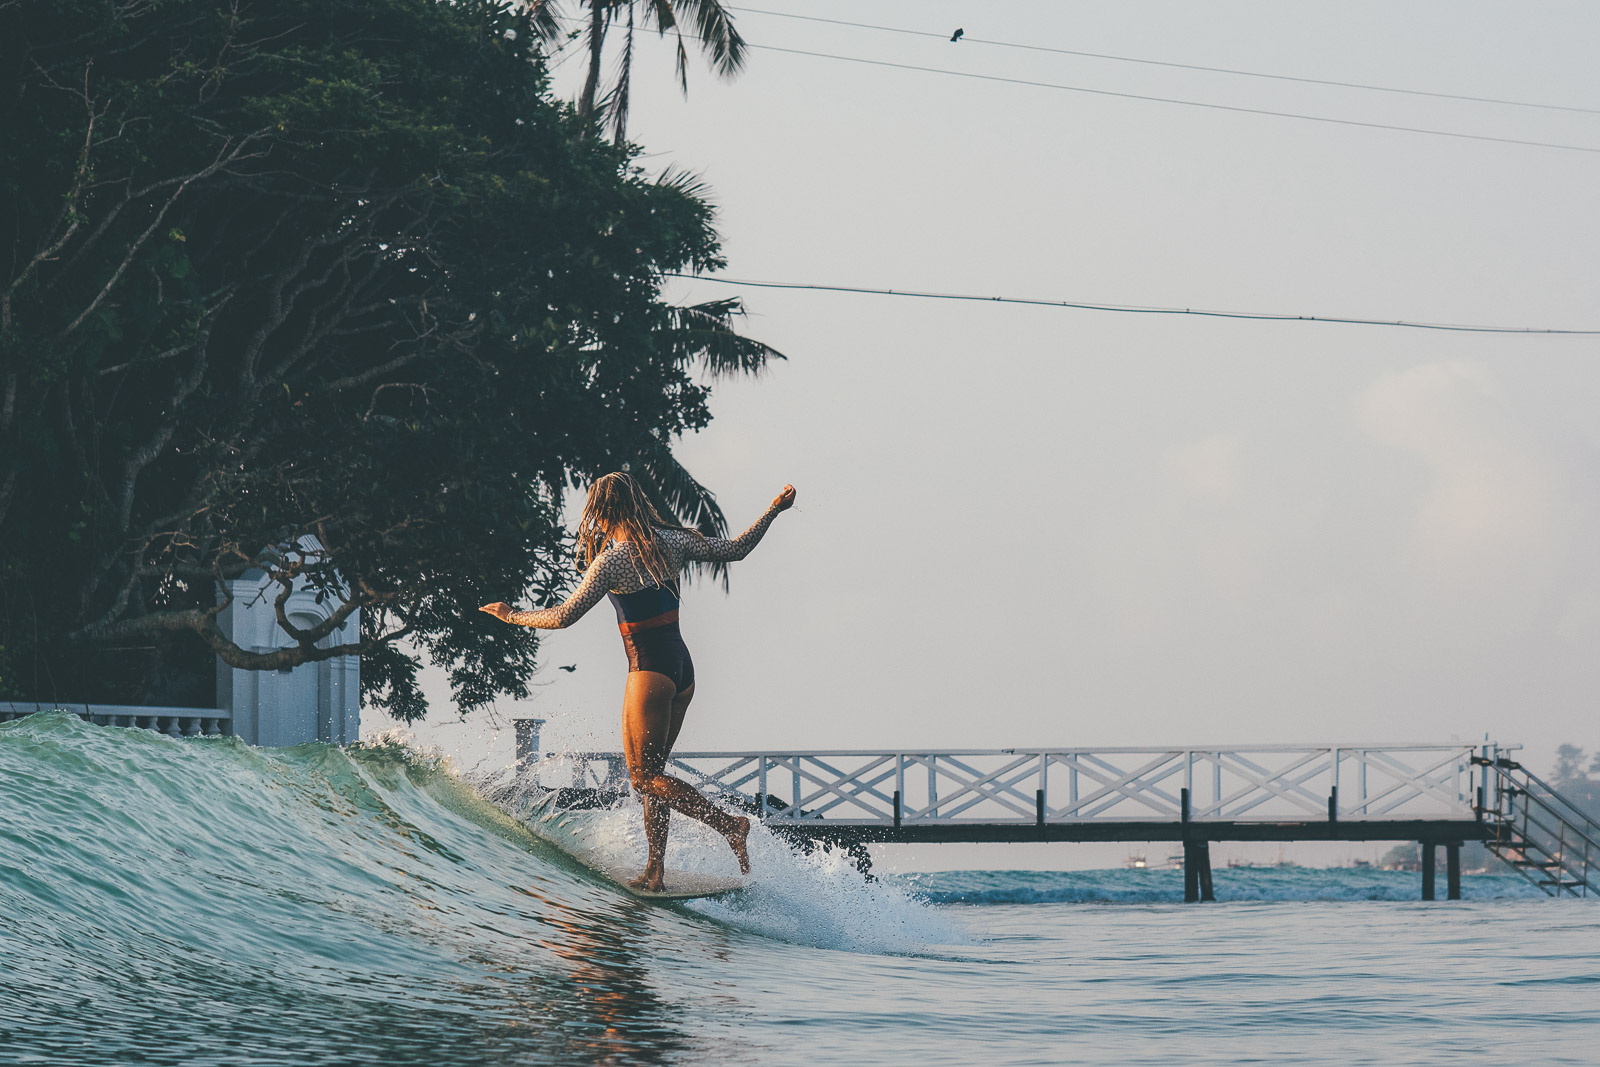 Karson Lewis surfing in Sri Lanka